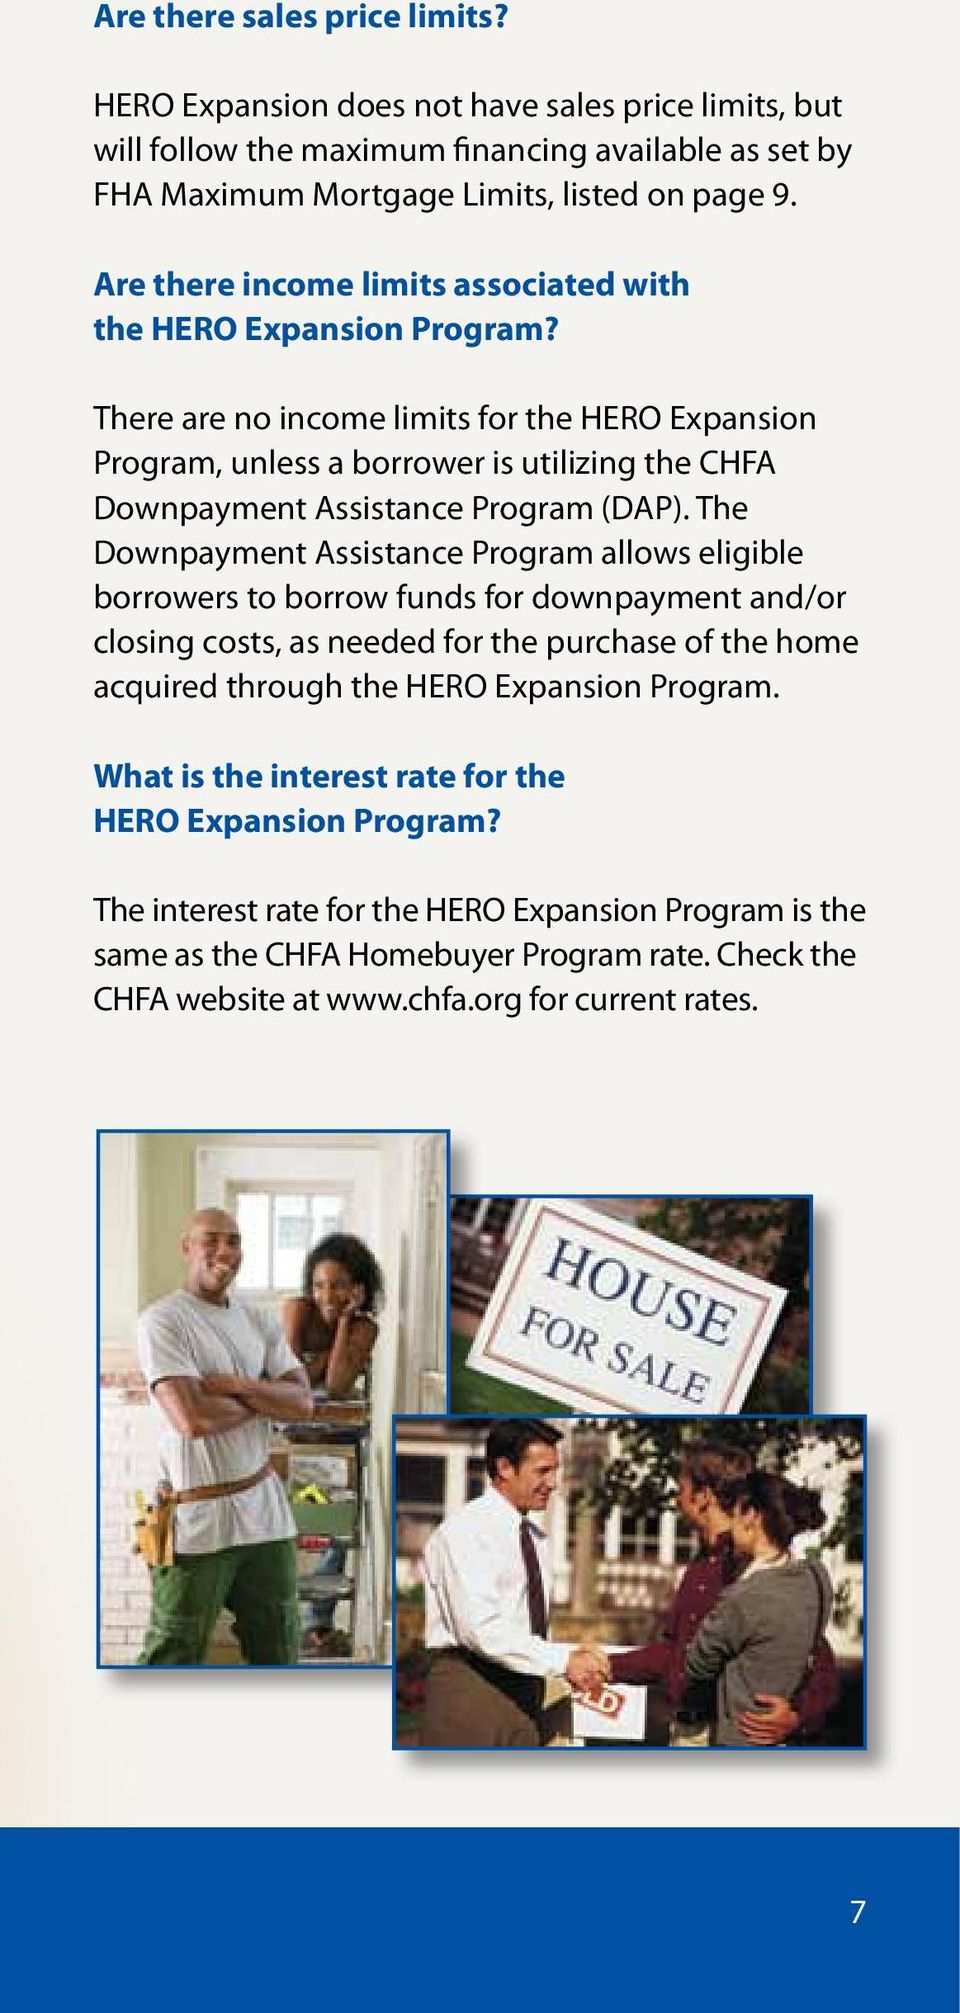 There are no income limits for the HERO Expansion Program, unless a borrower is utilizing the CHFA Downpayment Assistance Program (DAP).